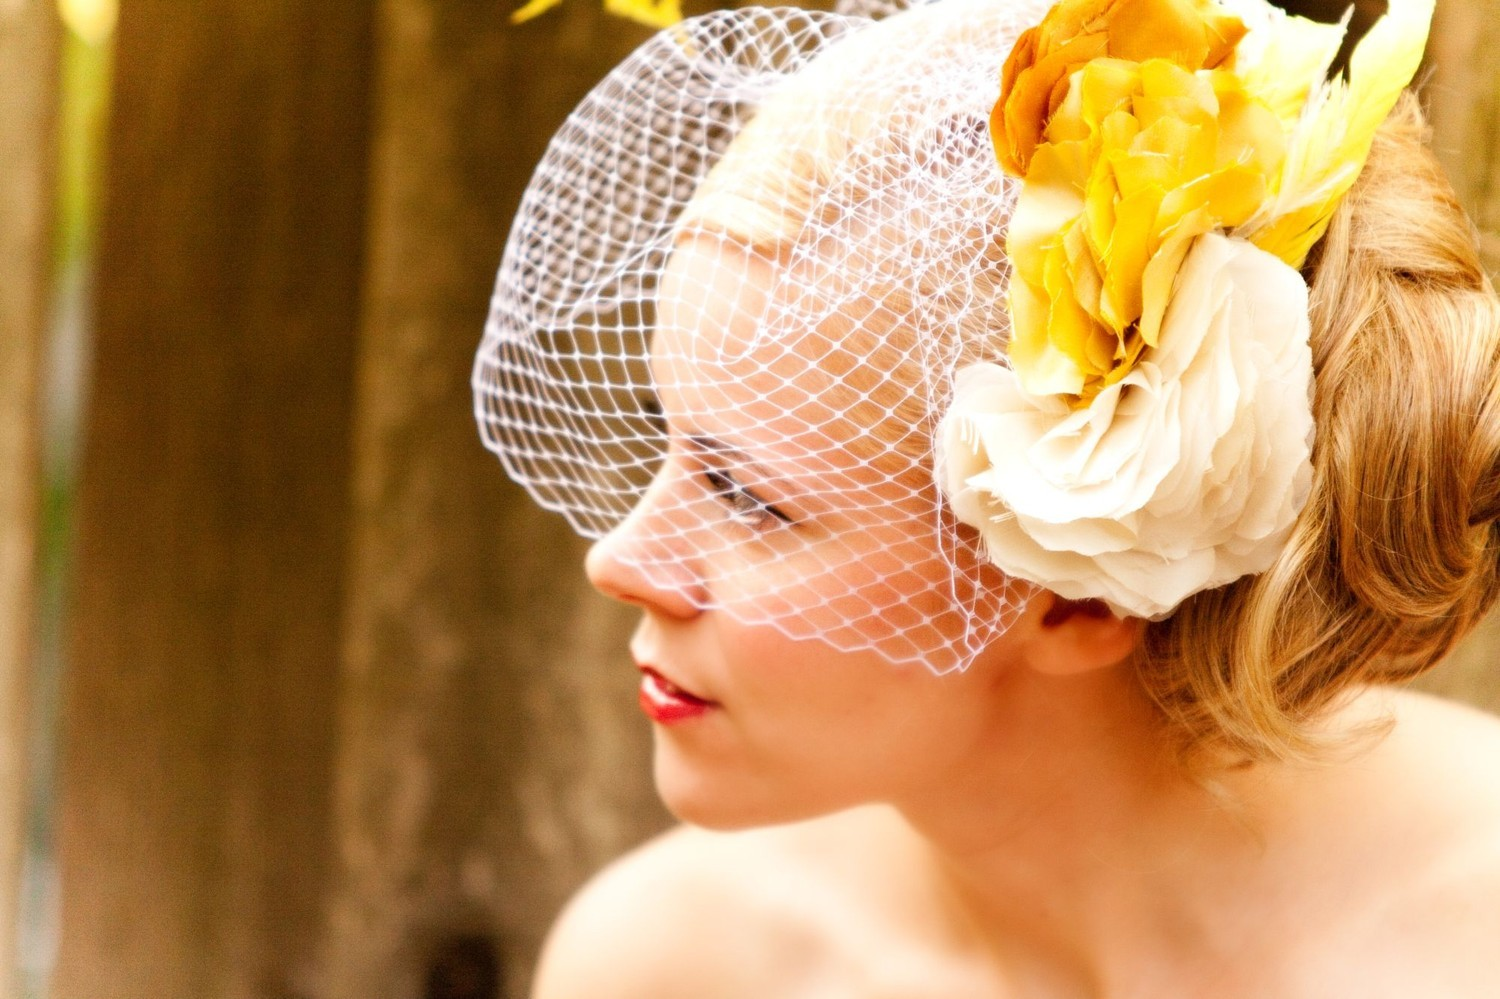 Romantic-wedding-hair-accessories-birdcage-veil-yellow-feathers.original